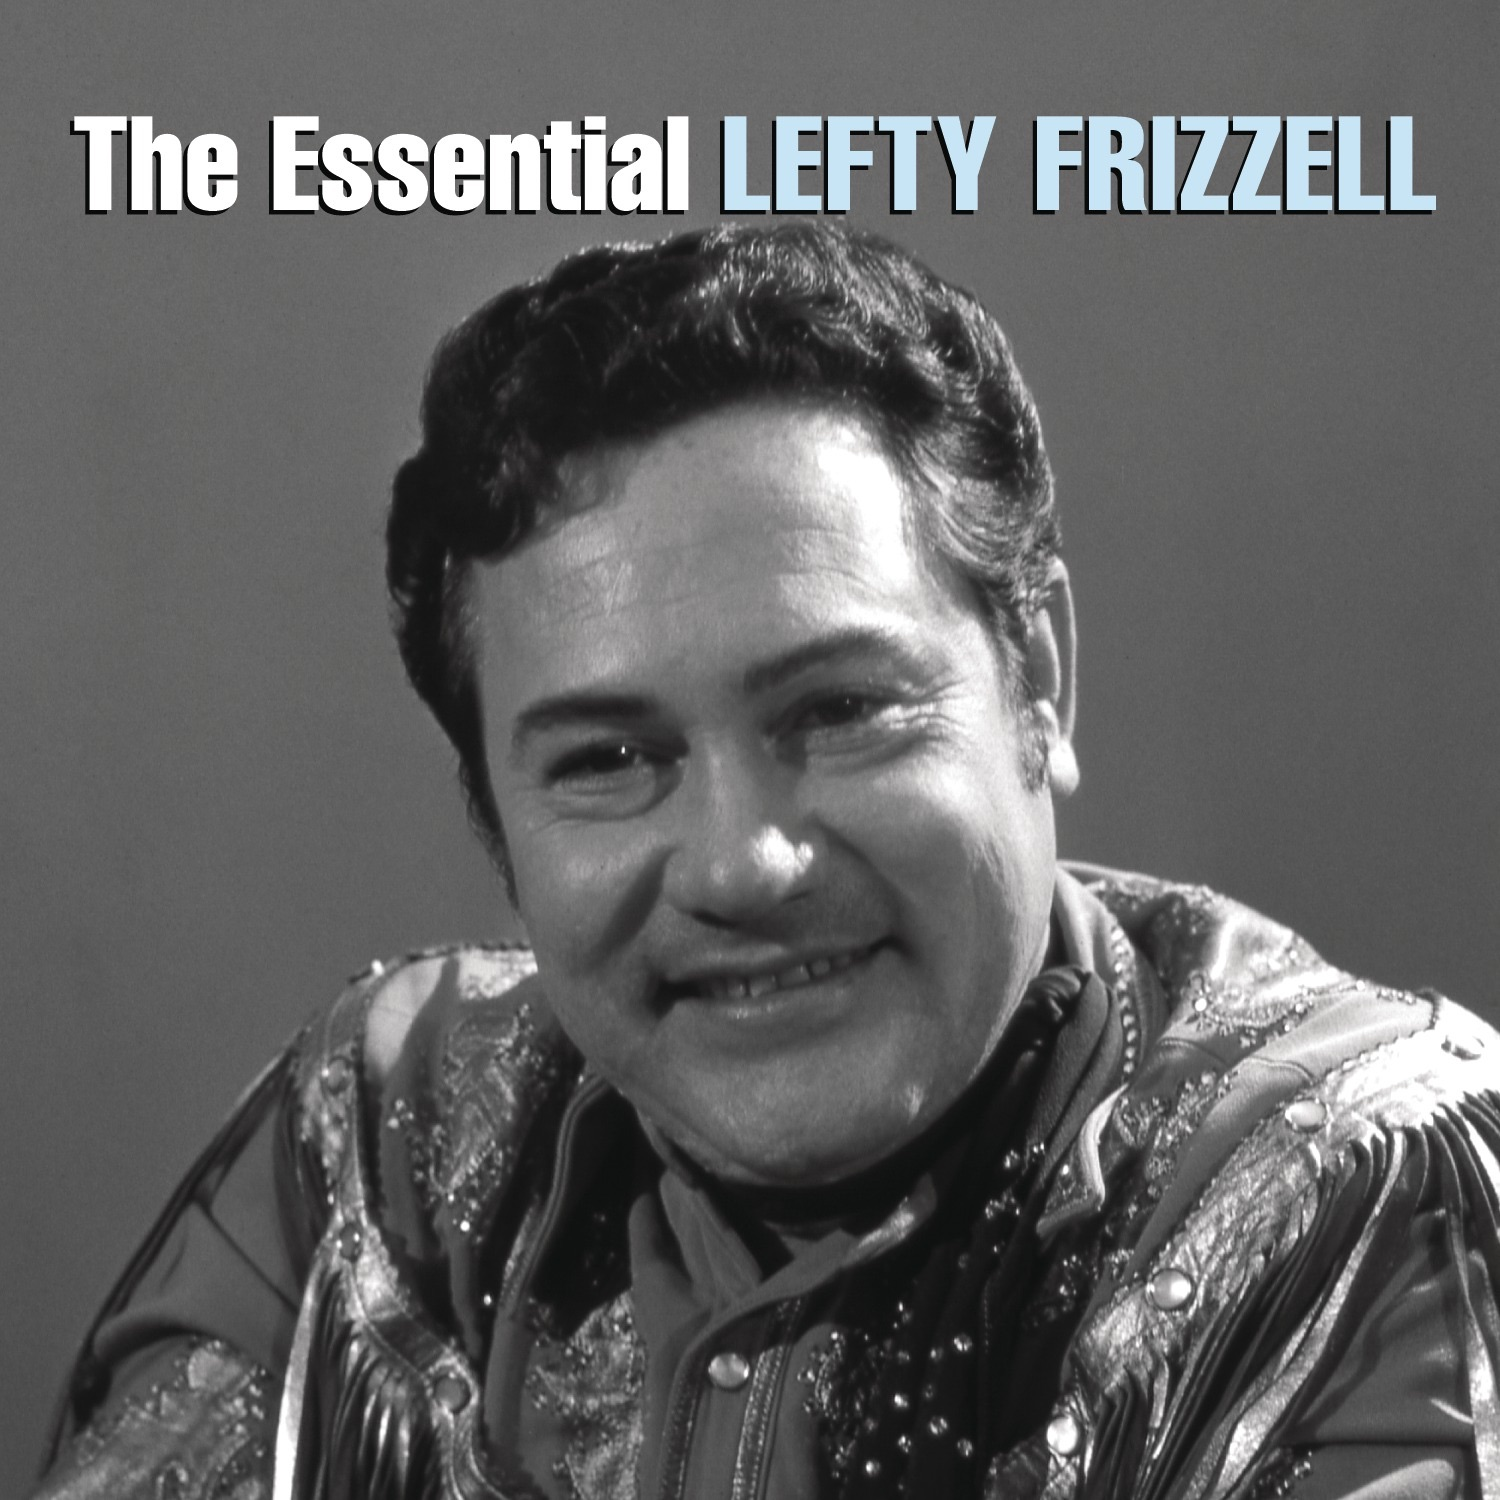 The Essential Lefty Frizzell